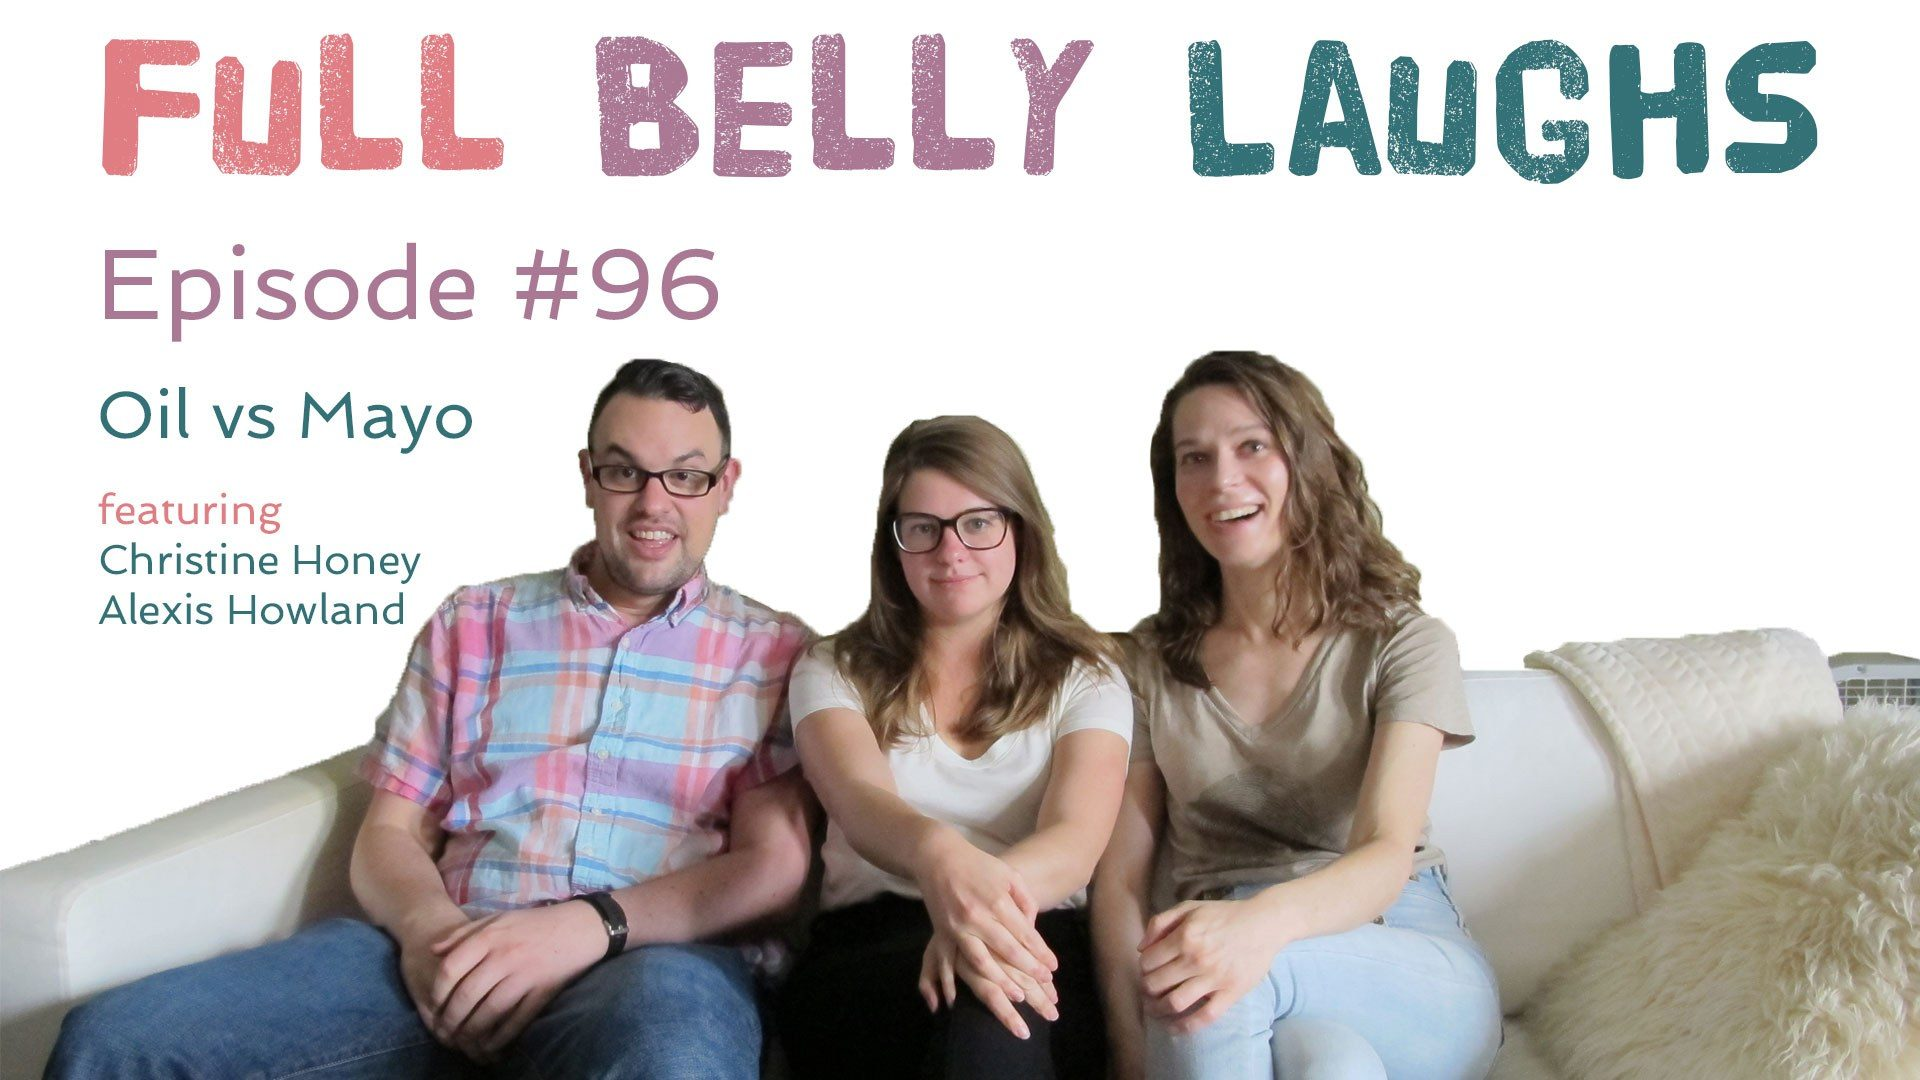 full belly laughs podcast episode 96 oil vs mayo audio artwork